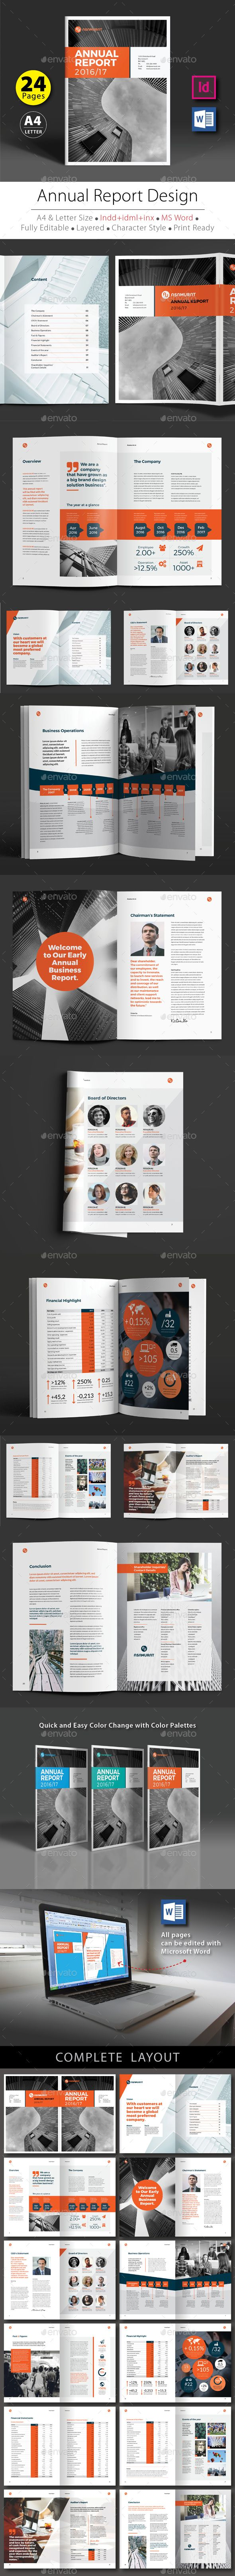 Annual Report Design Template V.5 - Corporate Brochures Download here : https://graphicriver.net/item/annual-report-design-template-v5/19646269?s_rank=102&ref=Al-fatih